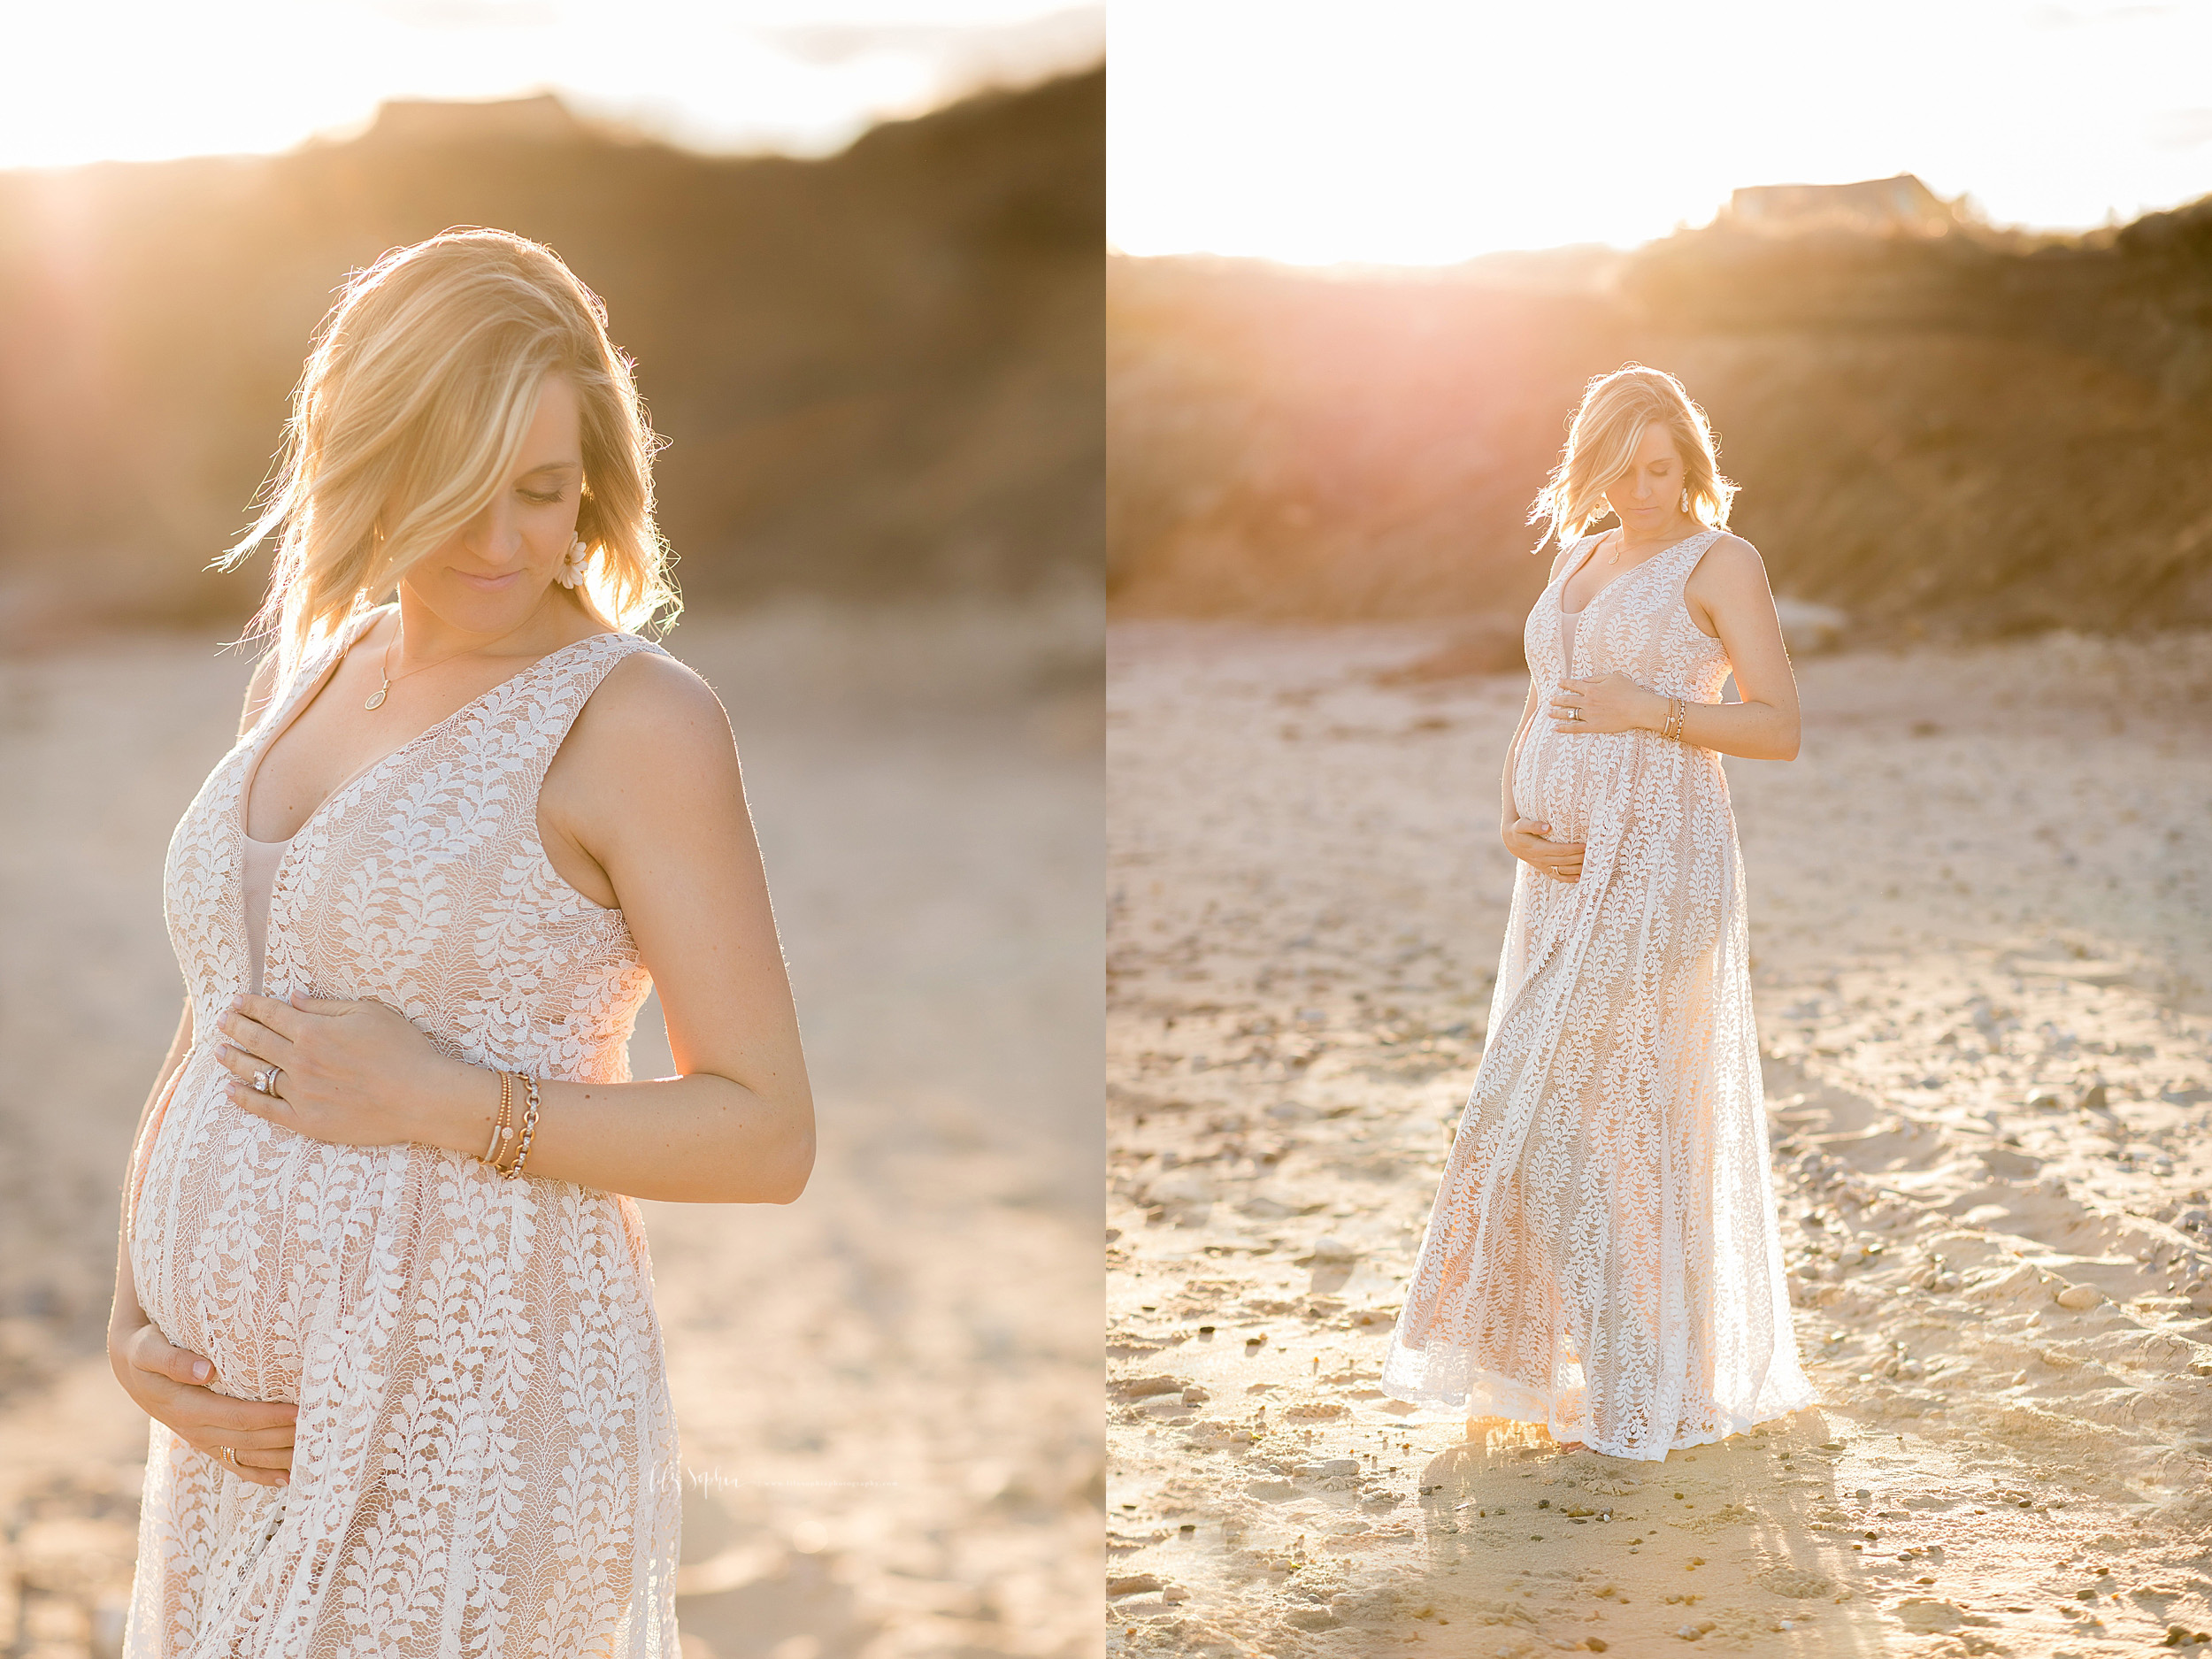 Maternity photo of a blonde woman in a lace overlay full-length sleeveless gown with a V-neck at sunset at the cliffs of Montauk, Long Island taken by Lily Sophia Photography out of Atlanta.